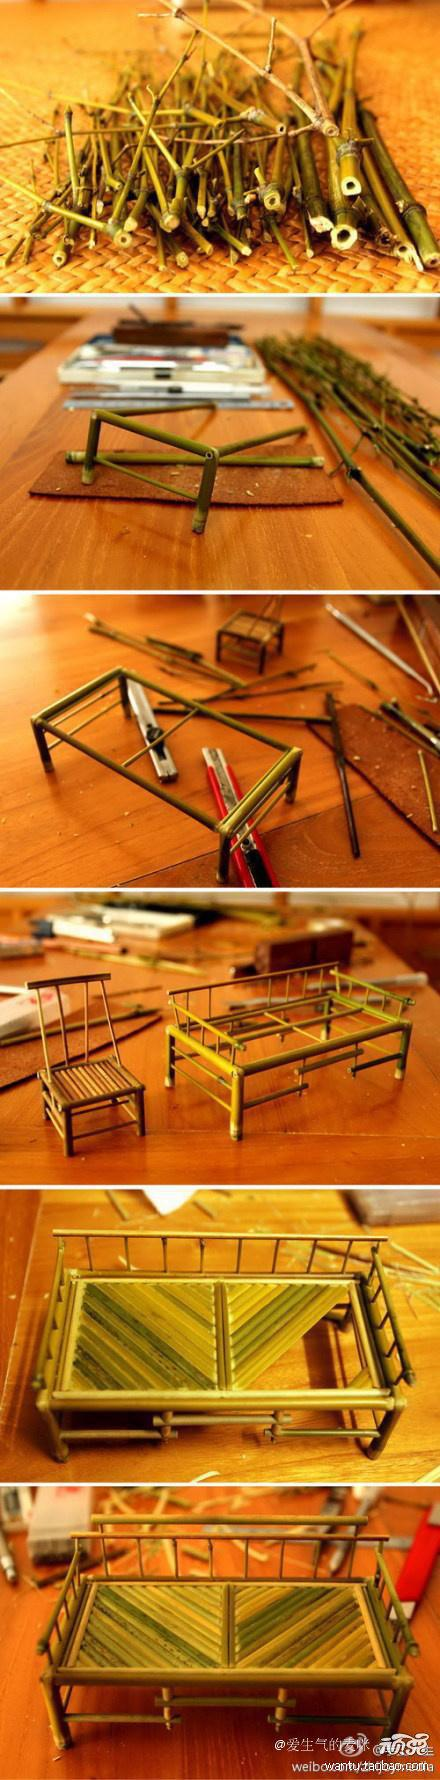 diy, diy projects, diy craft, handmade, diy mini bamboo furnitures